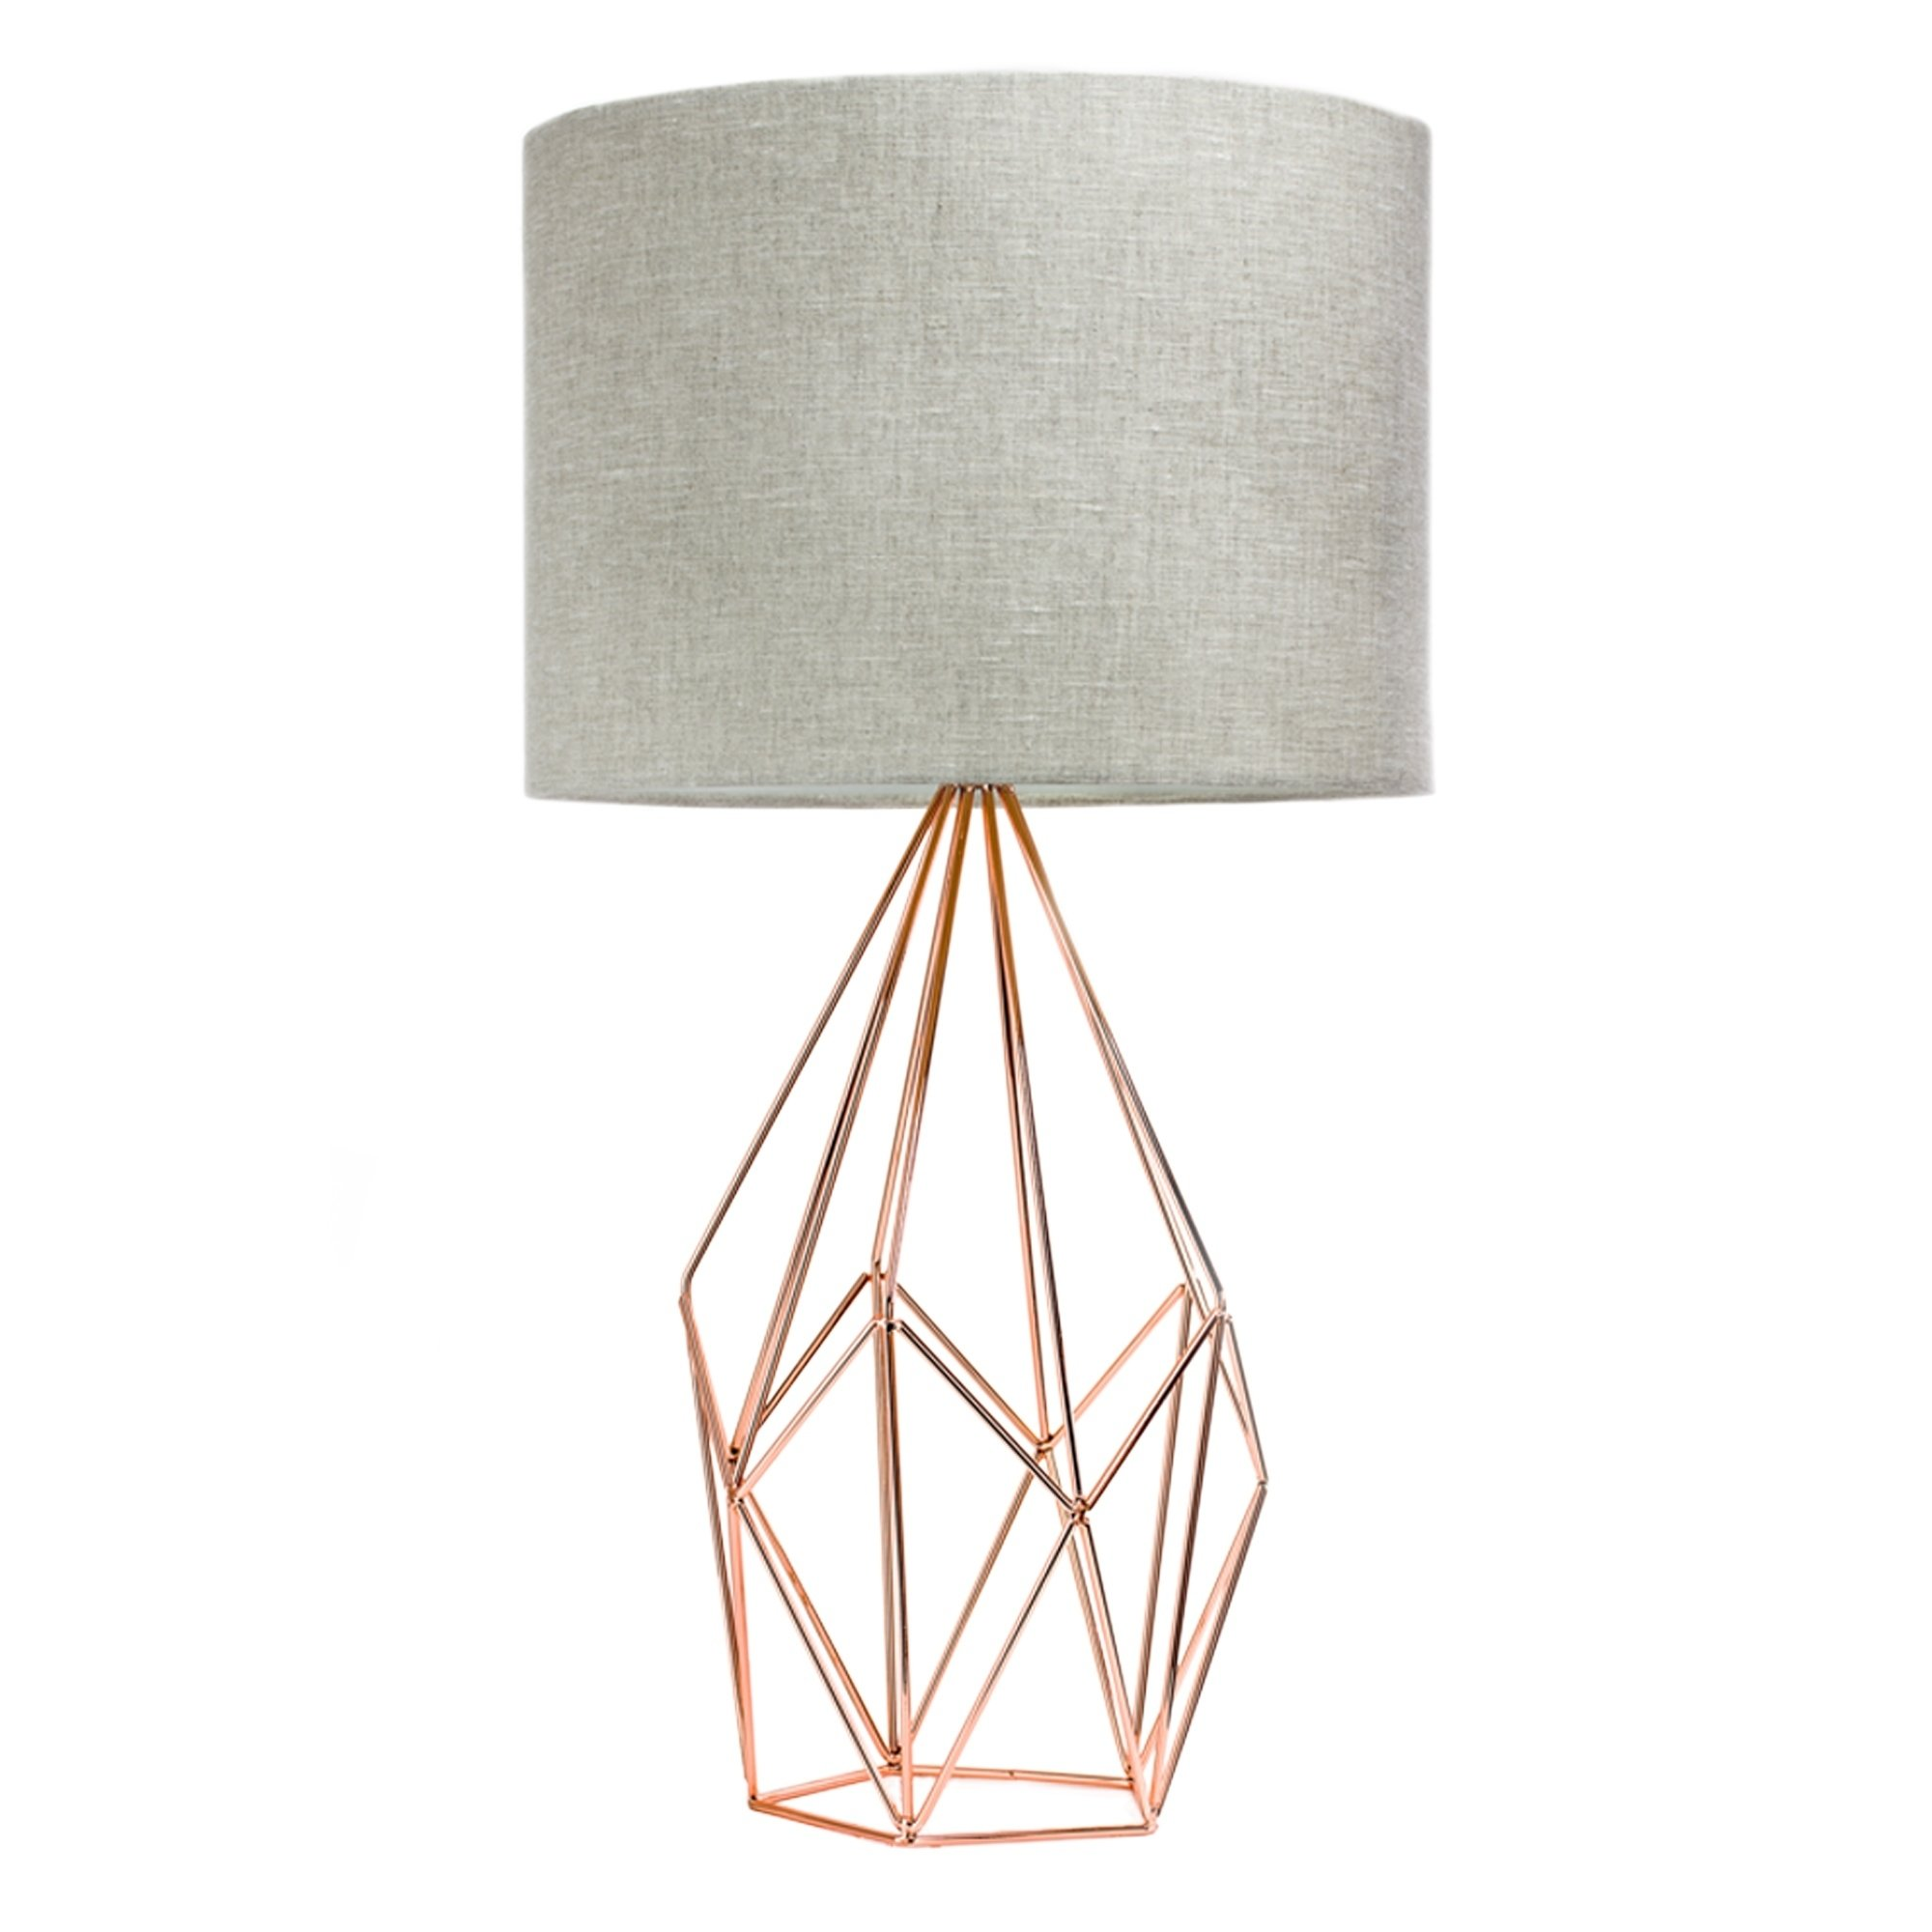 rose gold geometric metal cage table lamp with drum shade accent free shipping today affordable beds outdoor cushions teal placemats and napkins small round pedestal end pretty